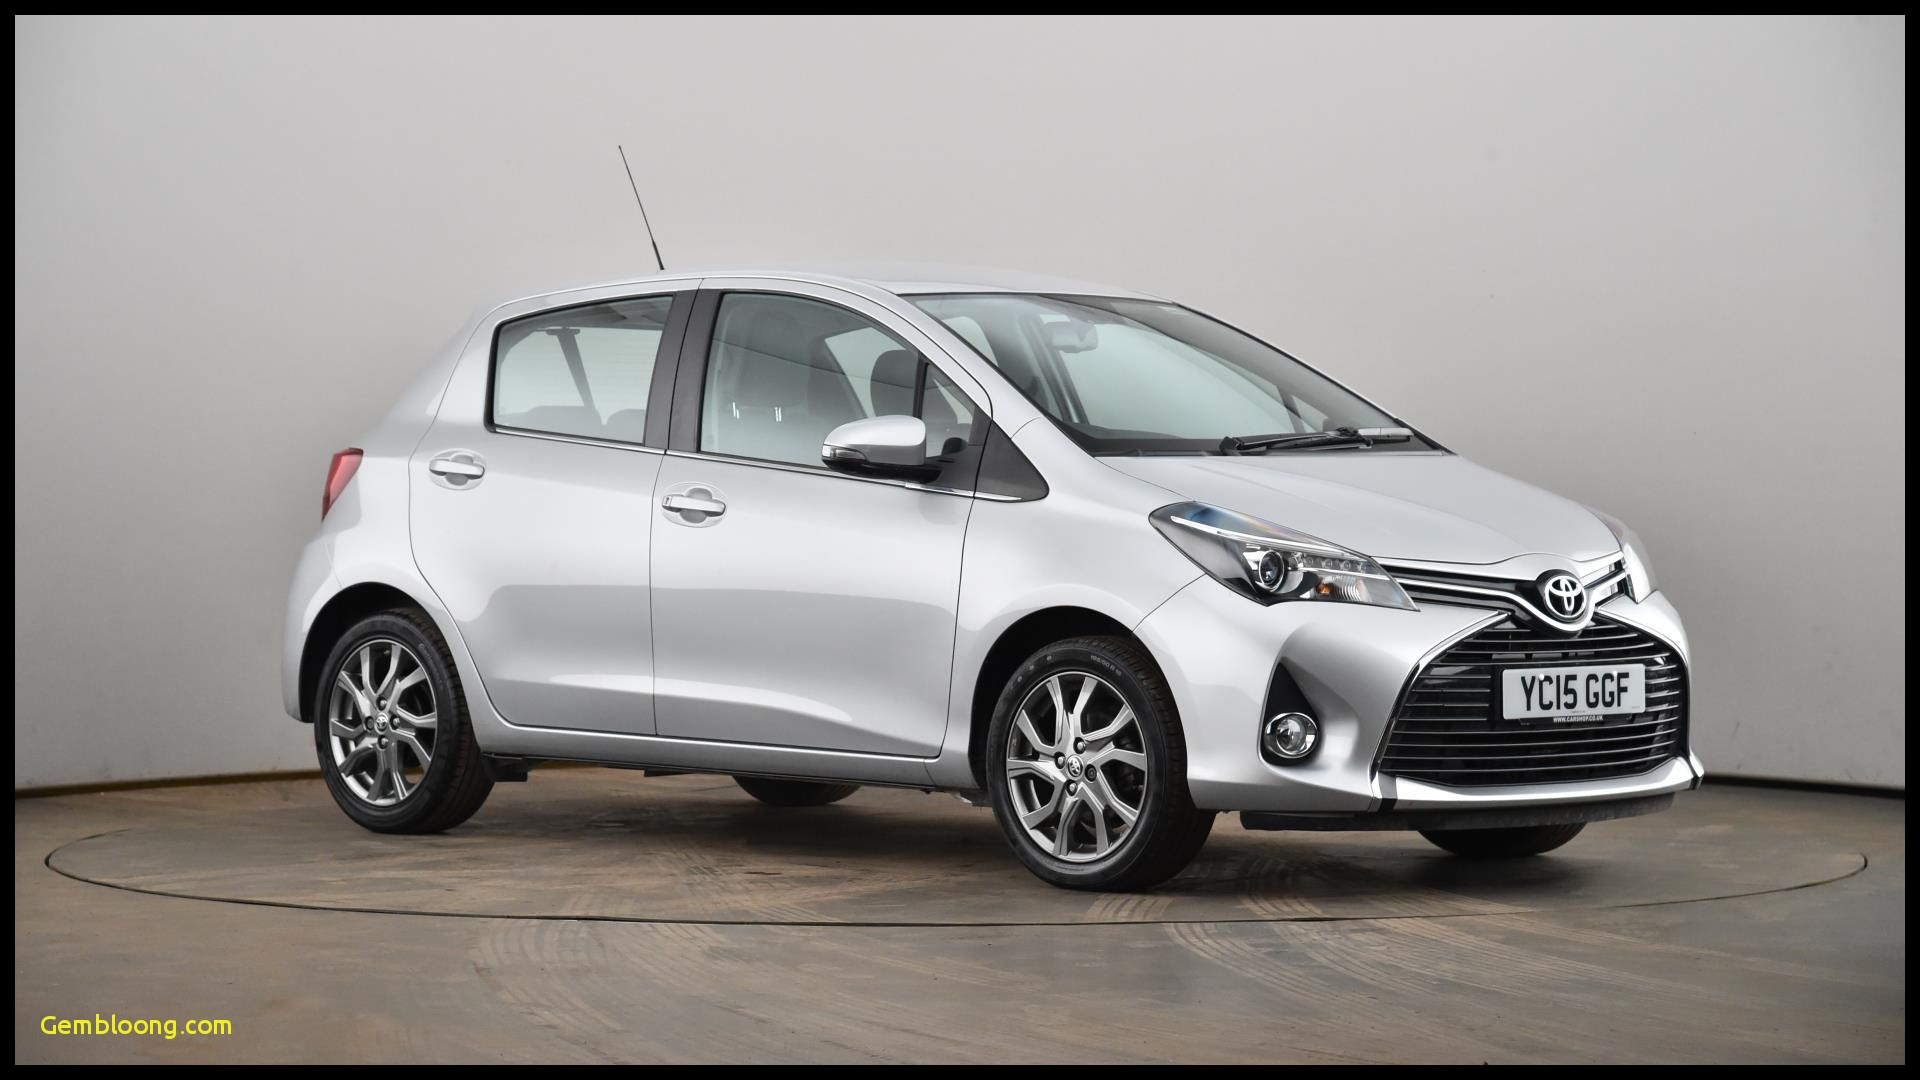 Hot 2019 toyota Yaris 2016 toyota Yaris Lovely Used toyota Avensis 2 0d Review